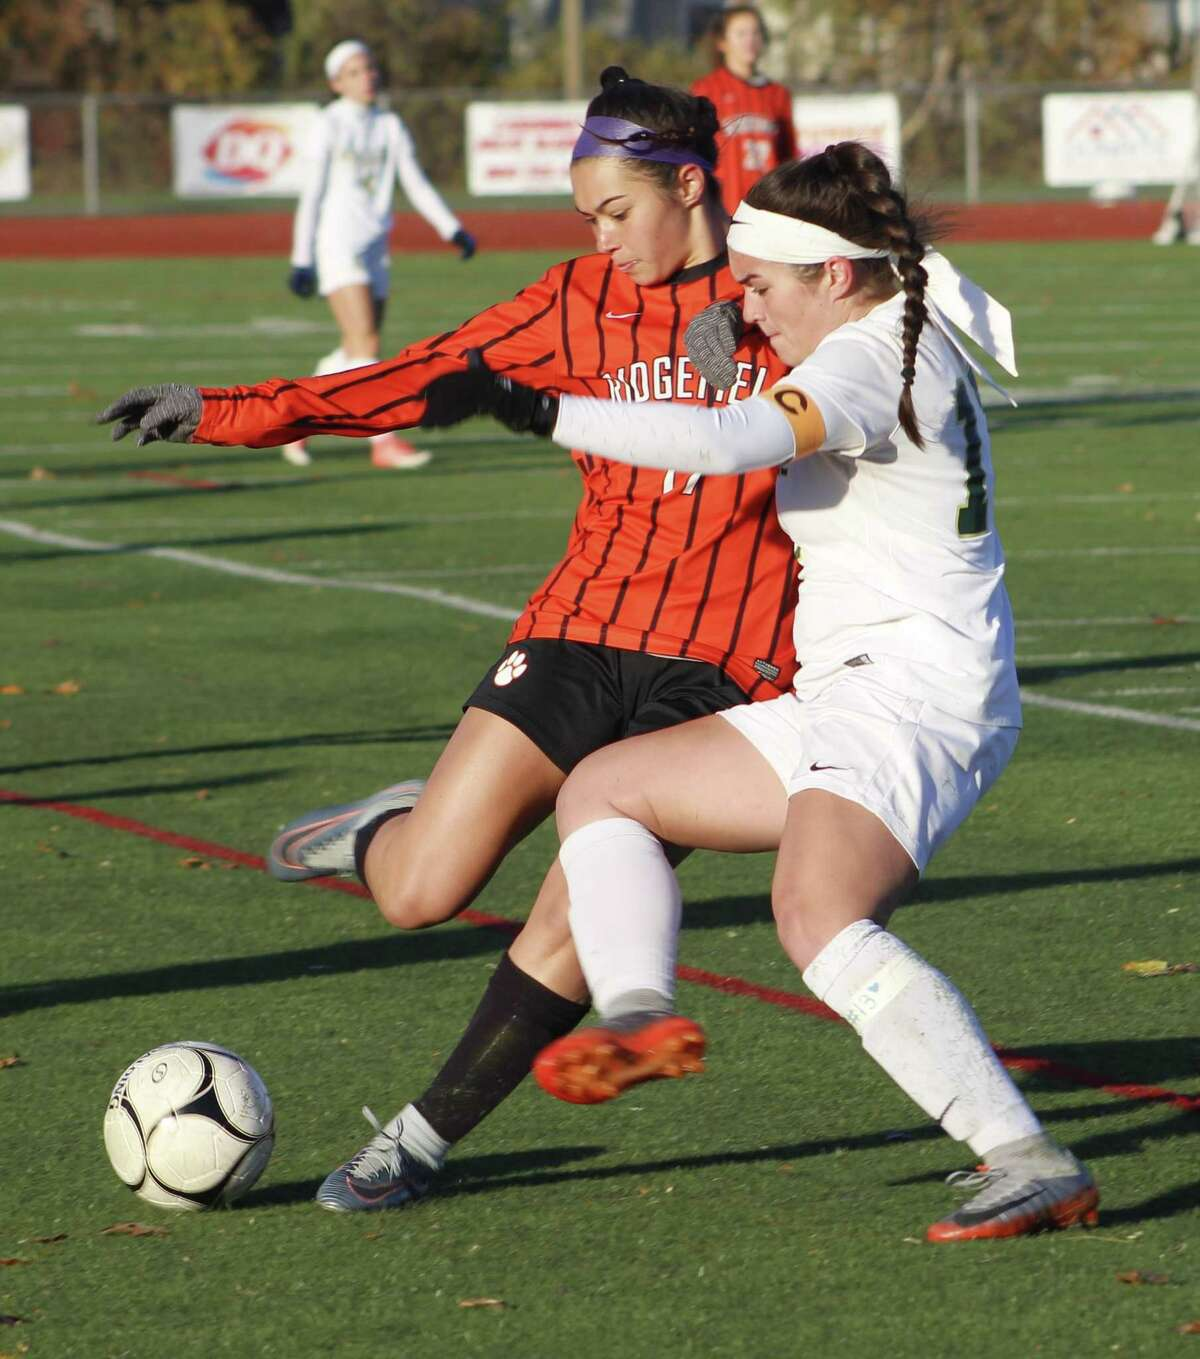 Ridgefield's Tasha Riek, left, and Enfield's Delaney Lawler battle for control of the ball during the Class LL state quarterfinal girls soccer game at Enfield High School Nov. 11, 2017.